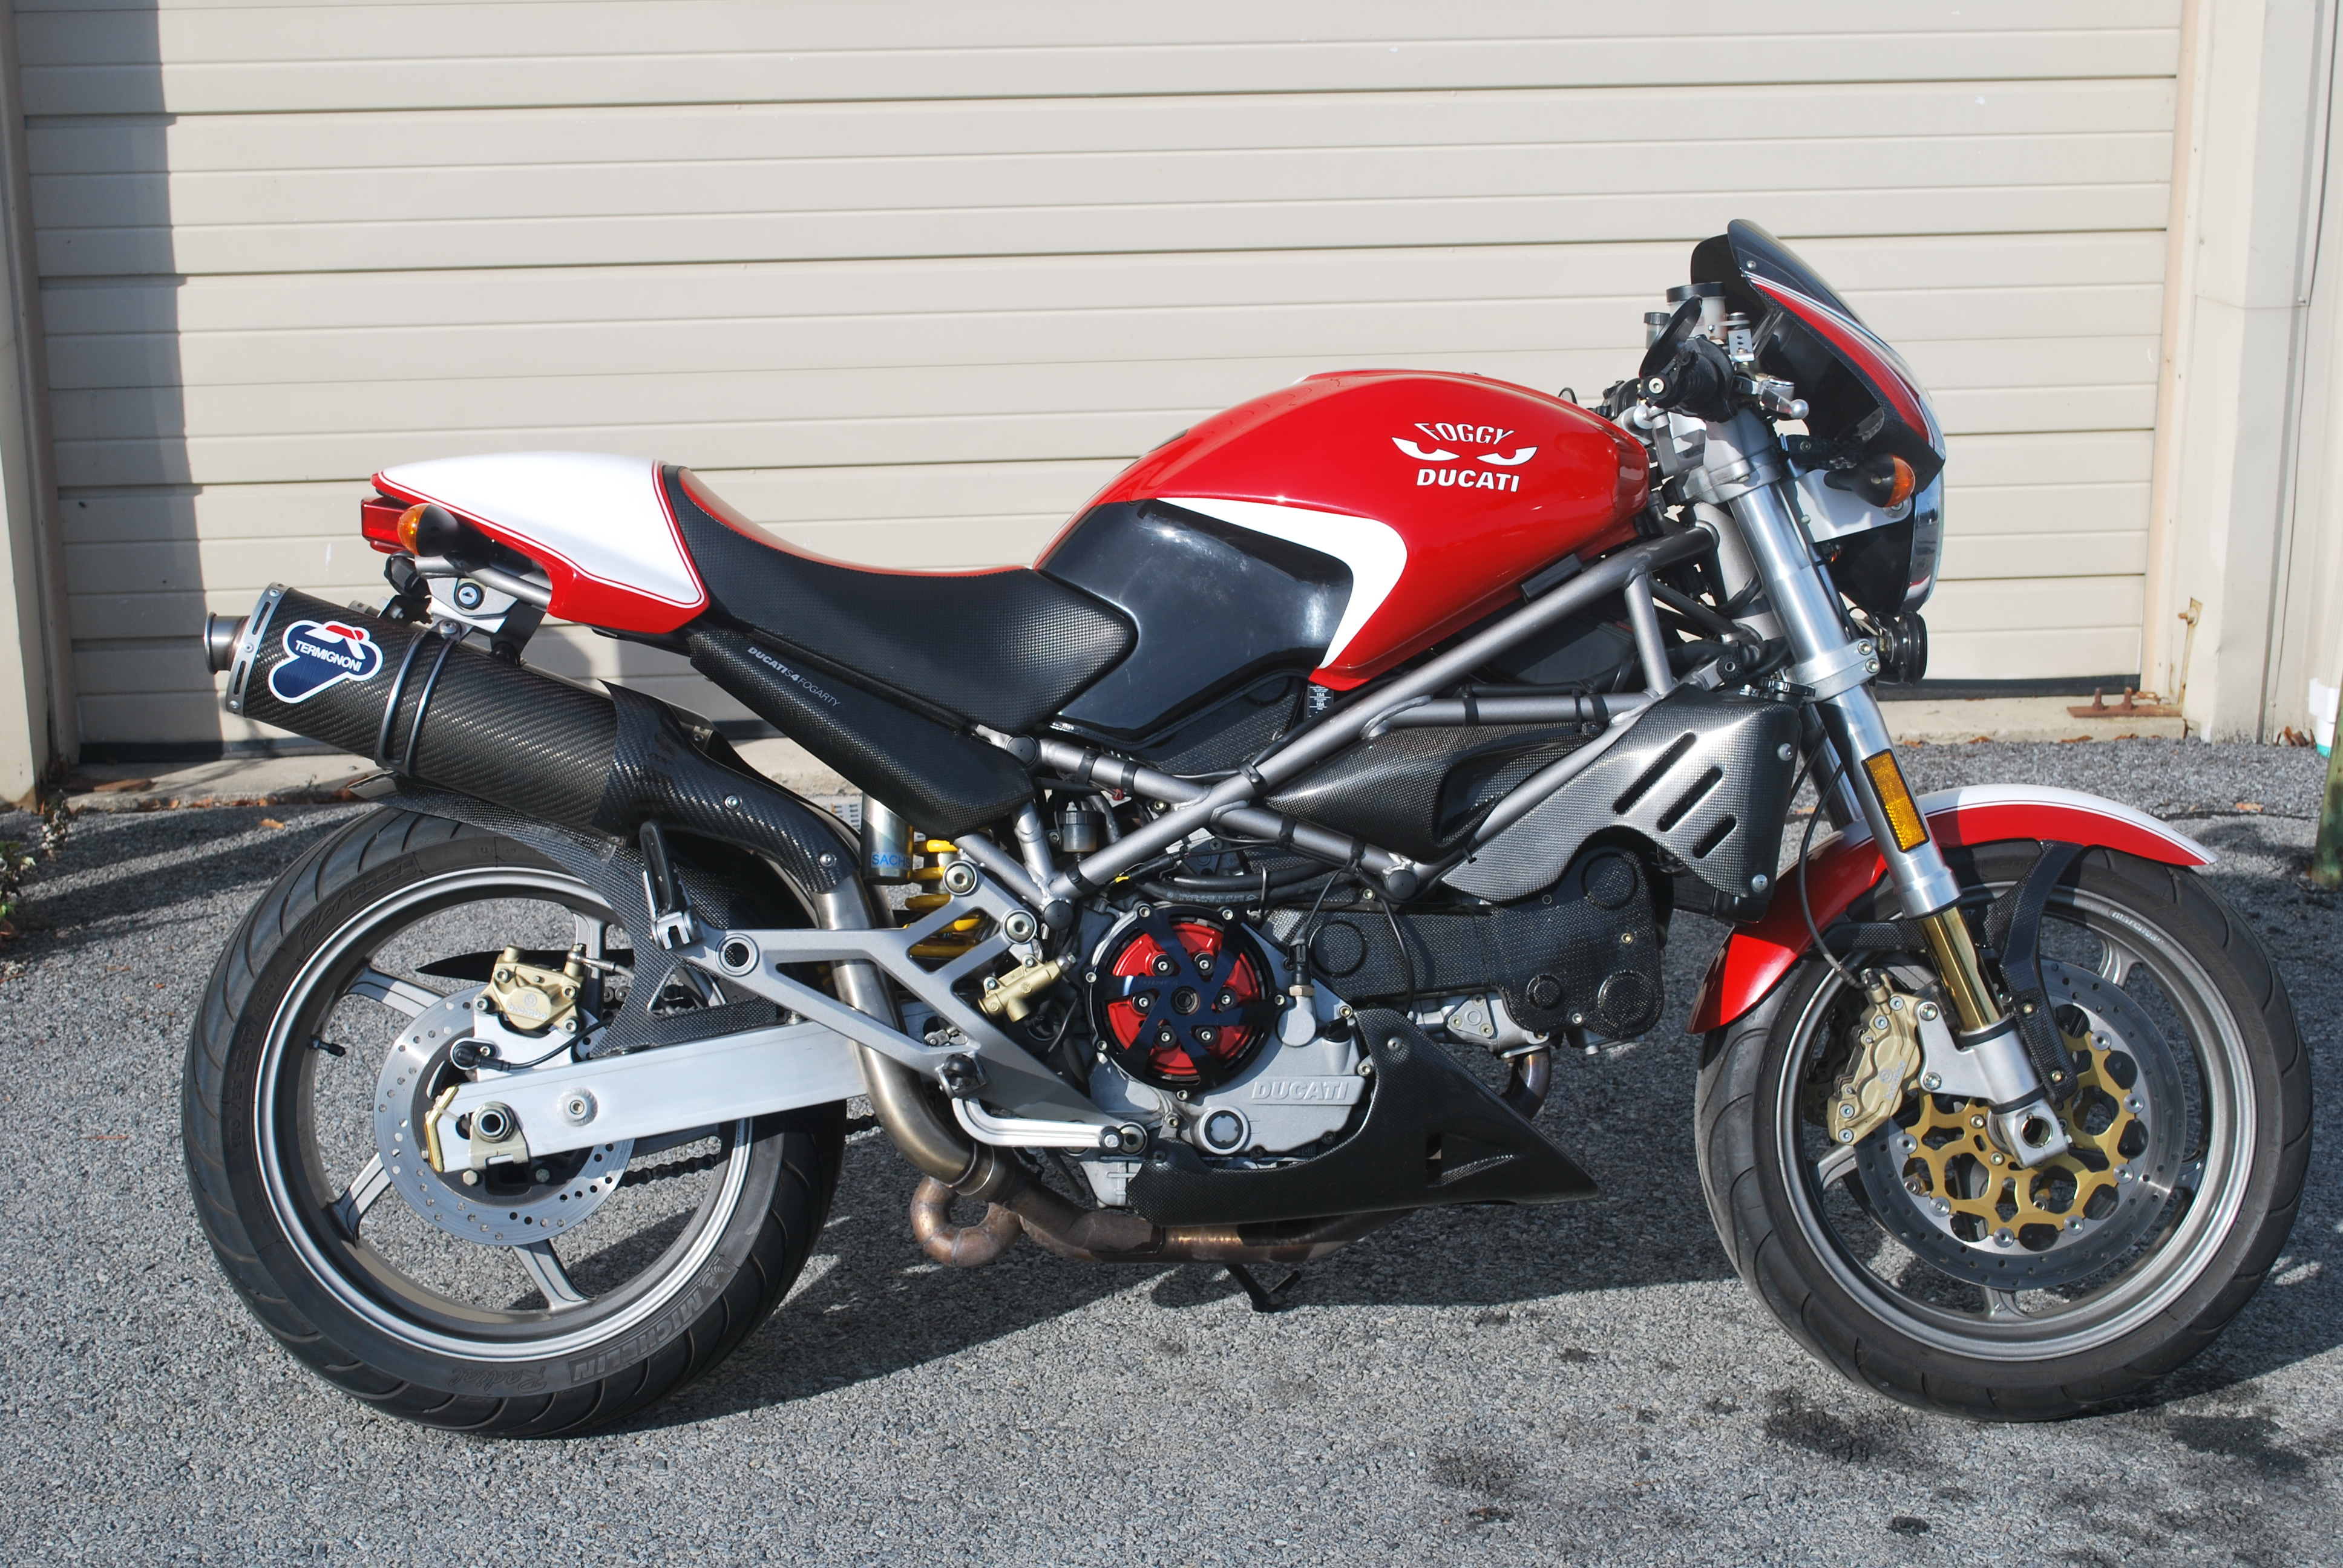 2002 ducati s4 fogarty foggy monster for sale ducati. Black Bedroom Furniture Sets. Home Design Ideas